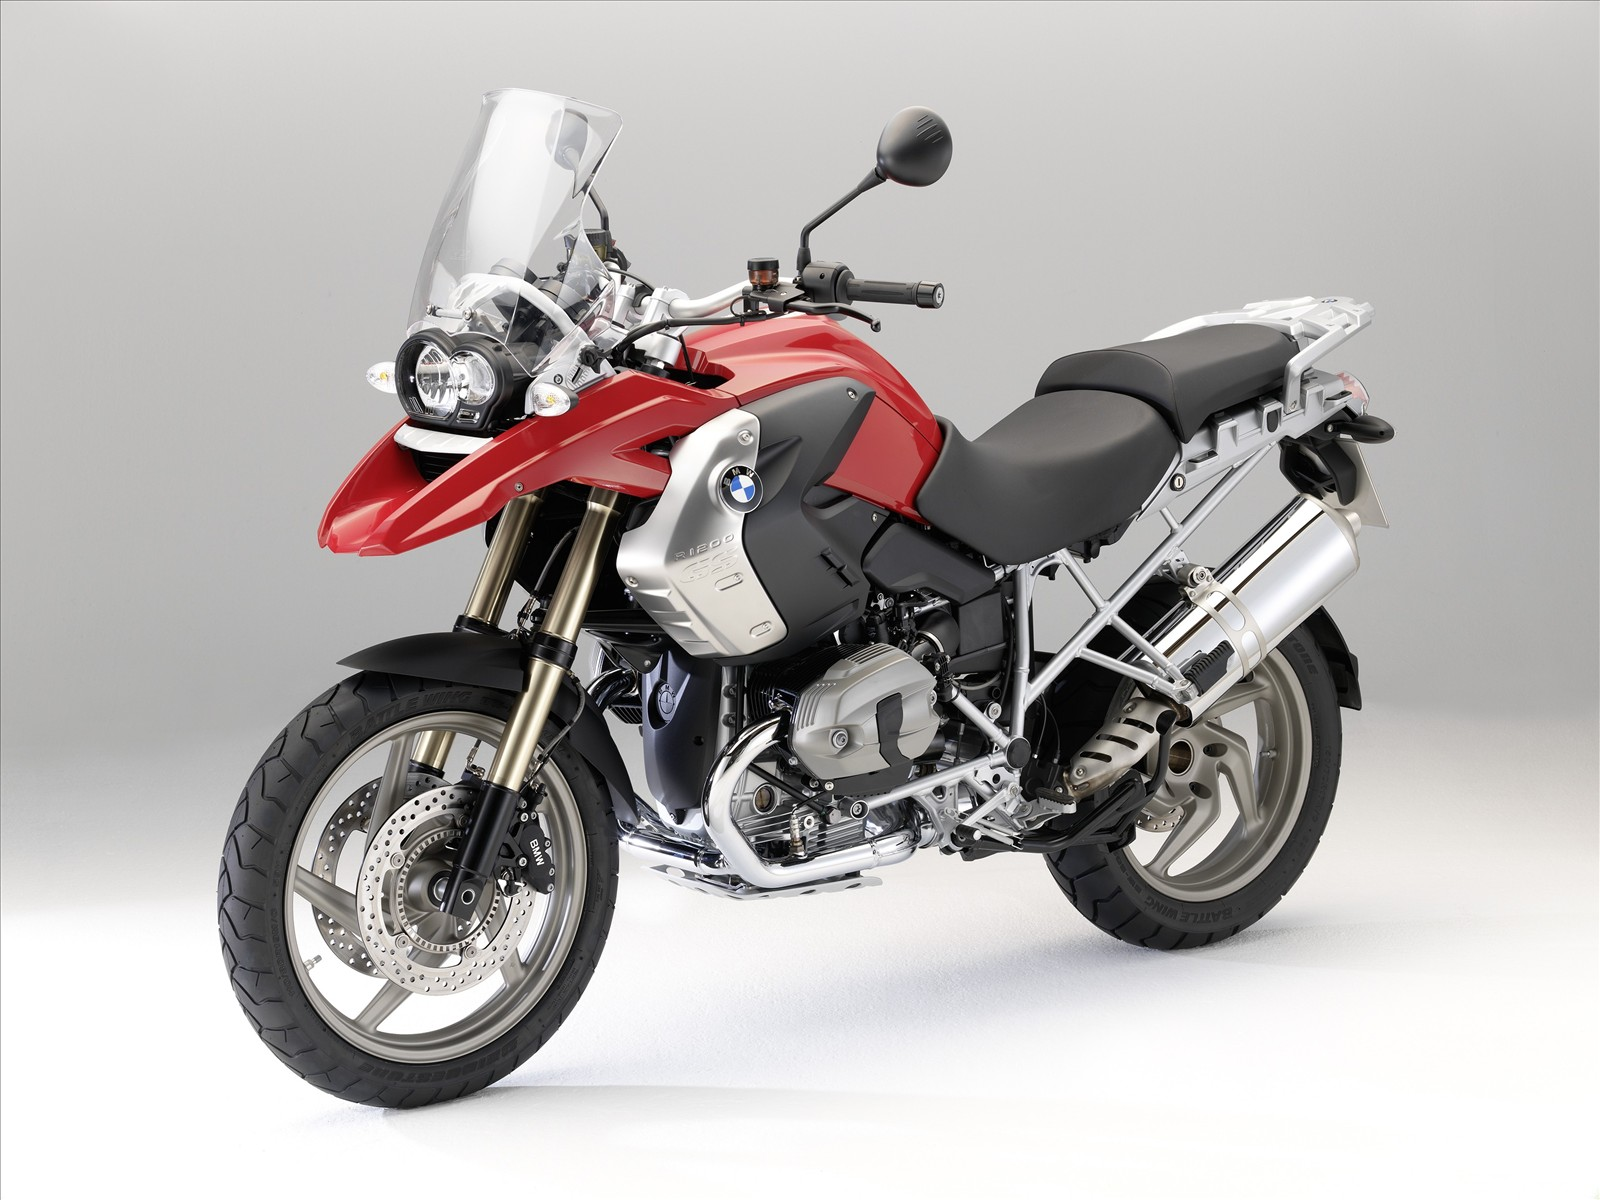 http://1.bp.blogspot.com/_71VYESfu88A/SwIG1SpvW5I/AAAAAAAABN8/sPJKpvIK7tw/s1600/The-New-BMW-R-1200-GS-Adventure-19.jpg